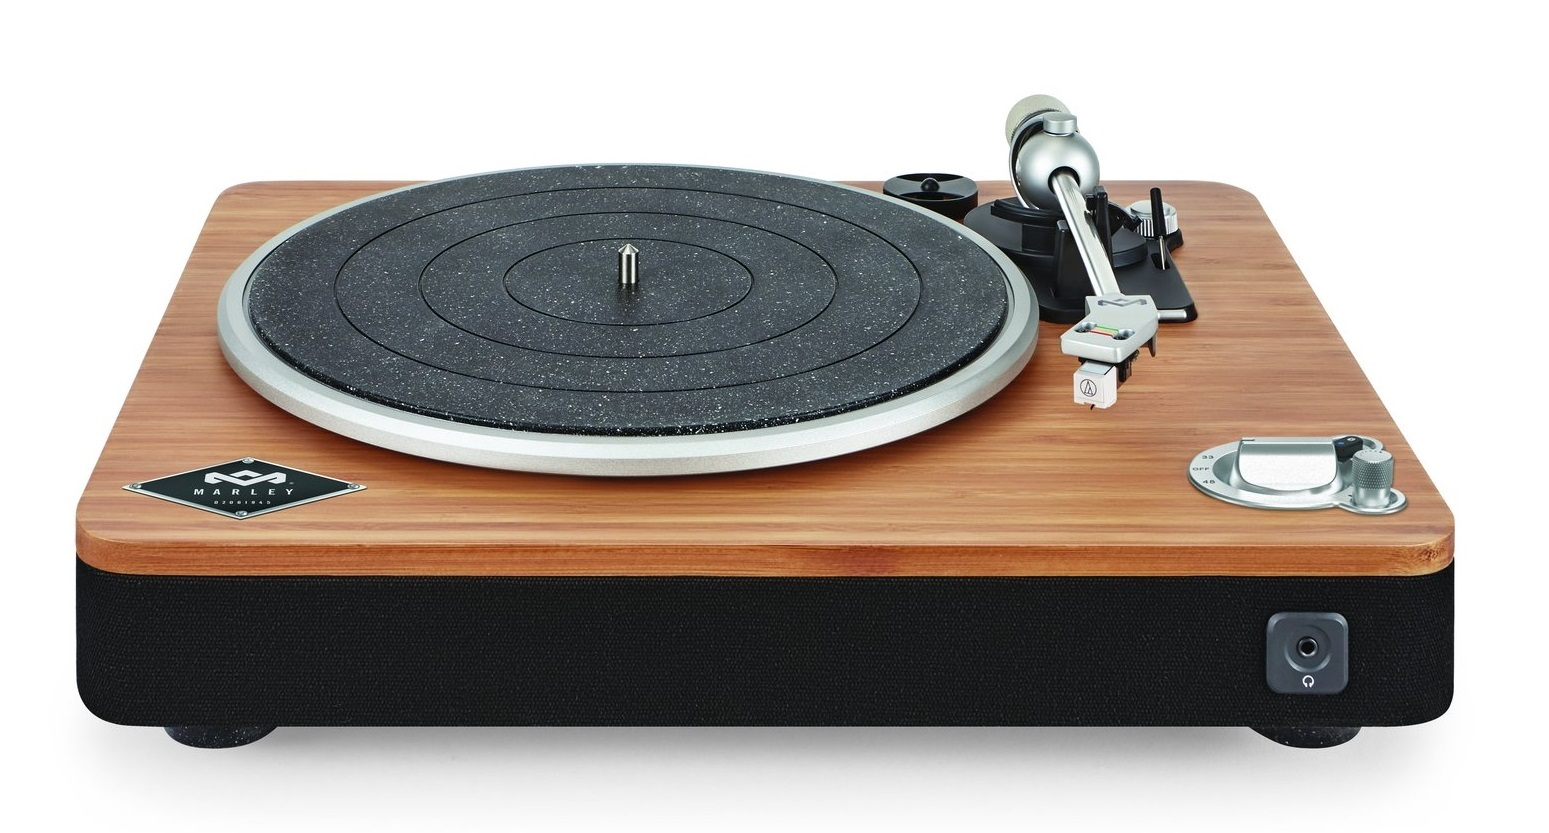 House of Marley: Stir It Up Turntable - Wireless image